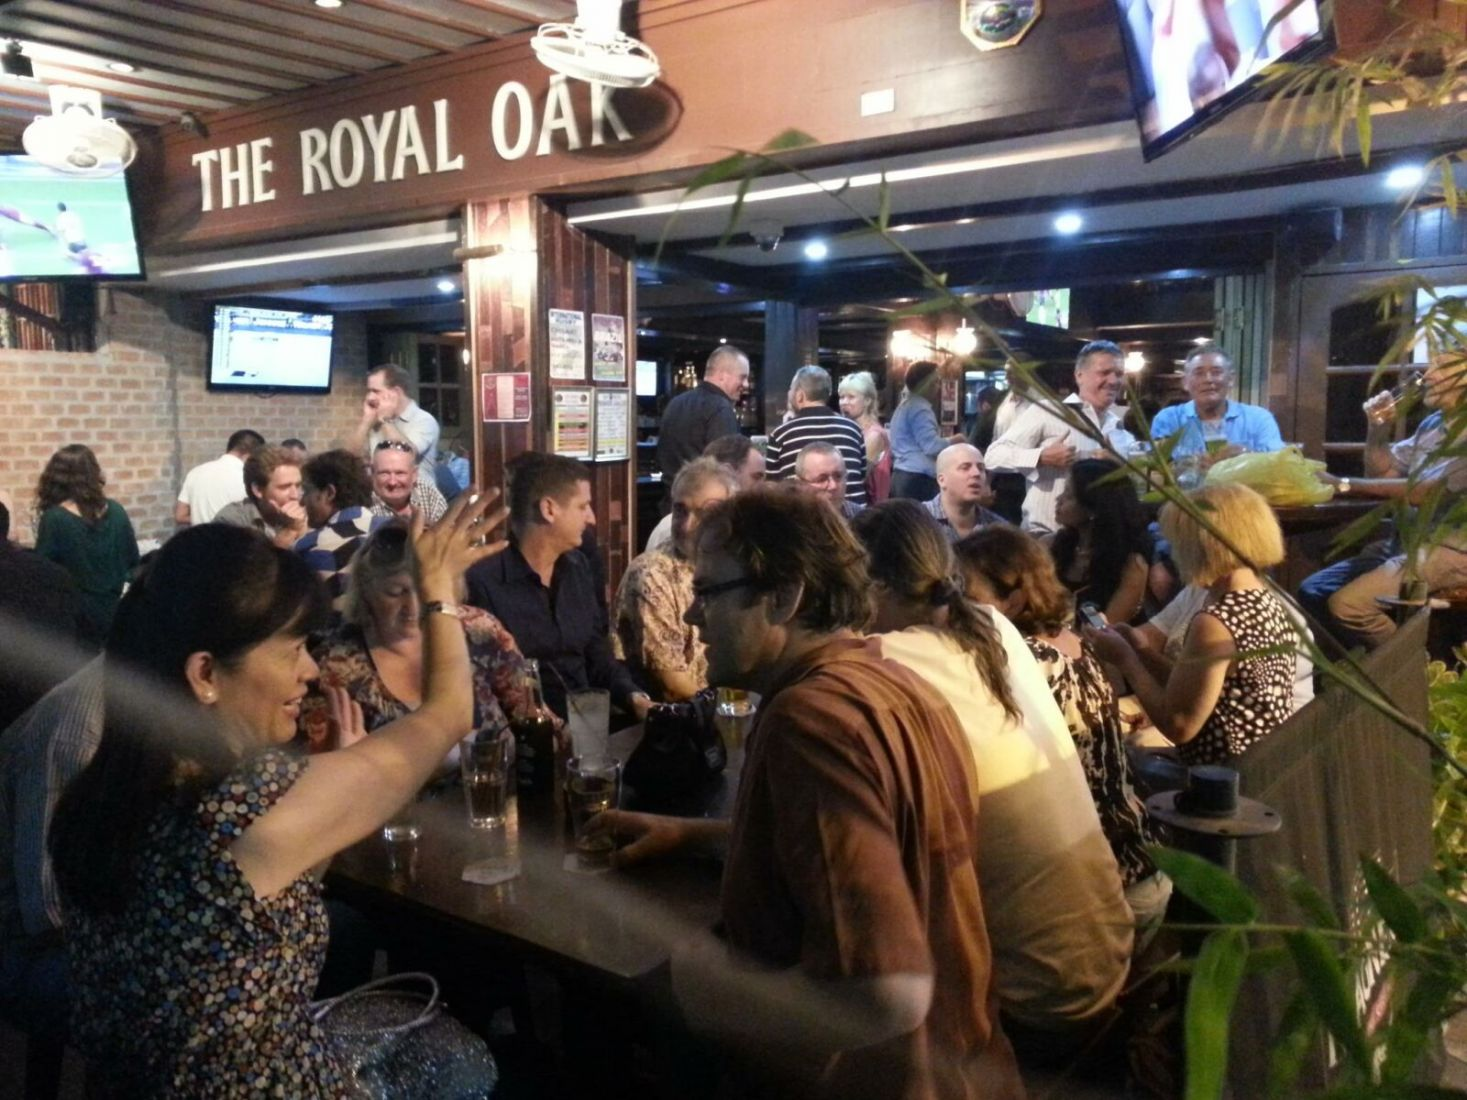 The Royal Oak - one of the best pubs in Bangkok